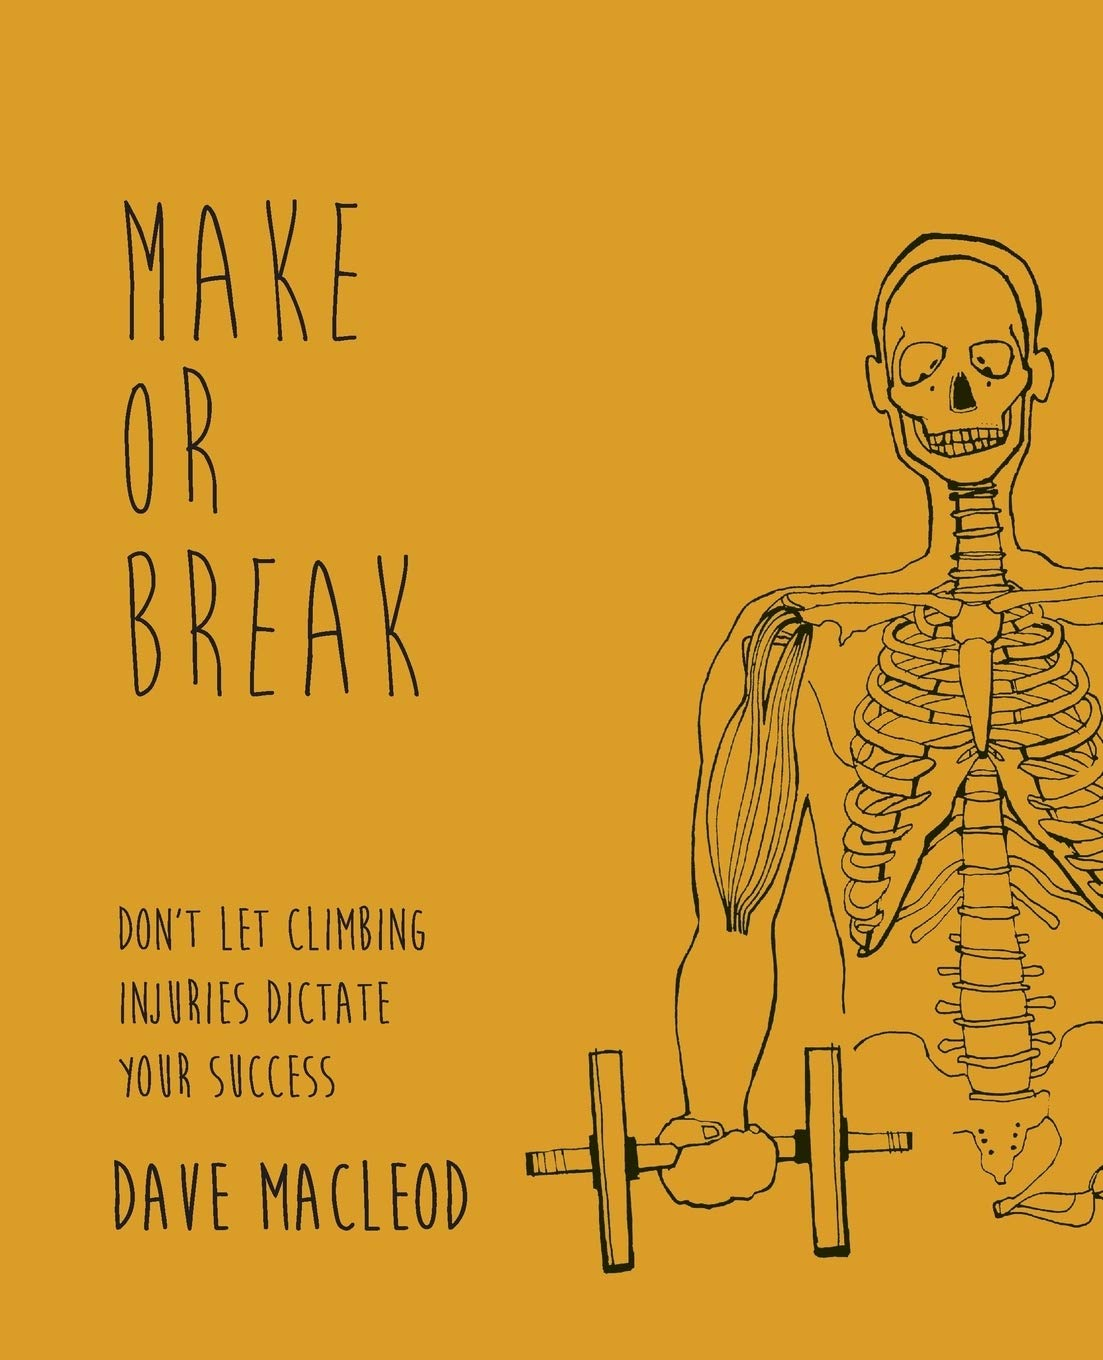 Make or Break: Don't Let Climbing Injuries Dictate Your Success by Rare Breed Productions